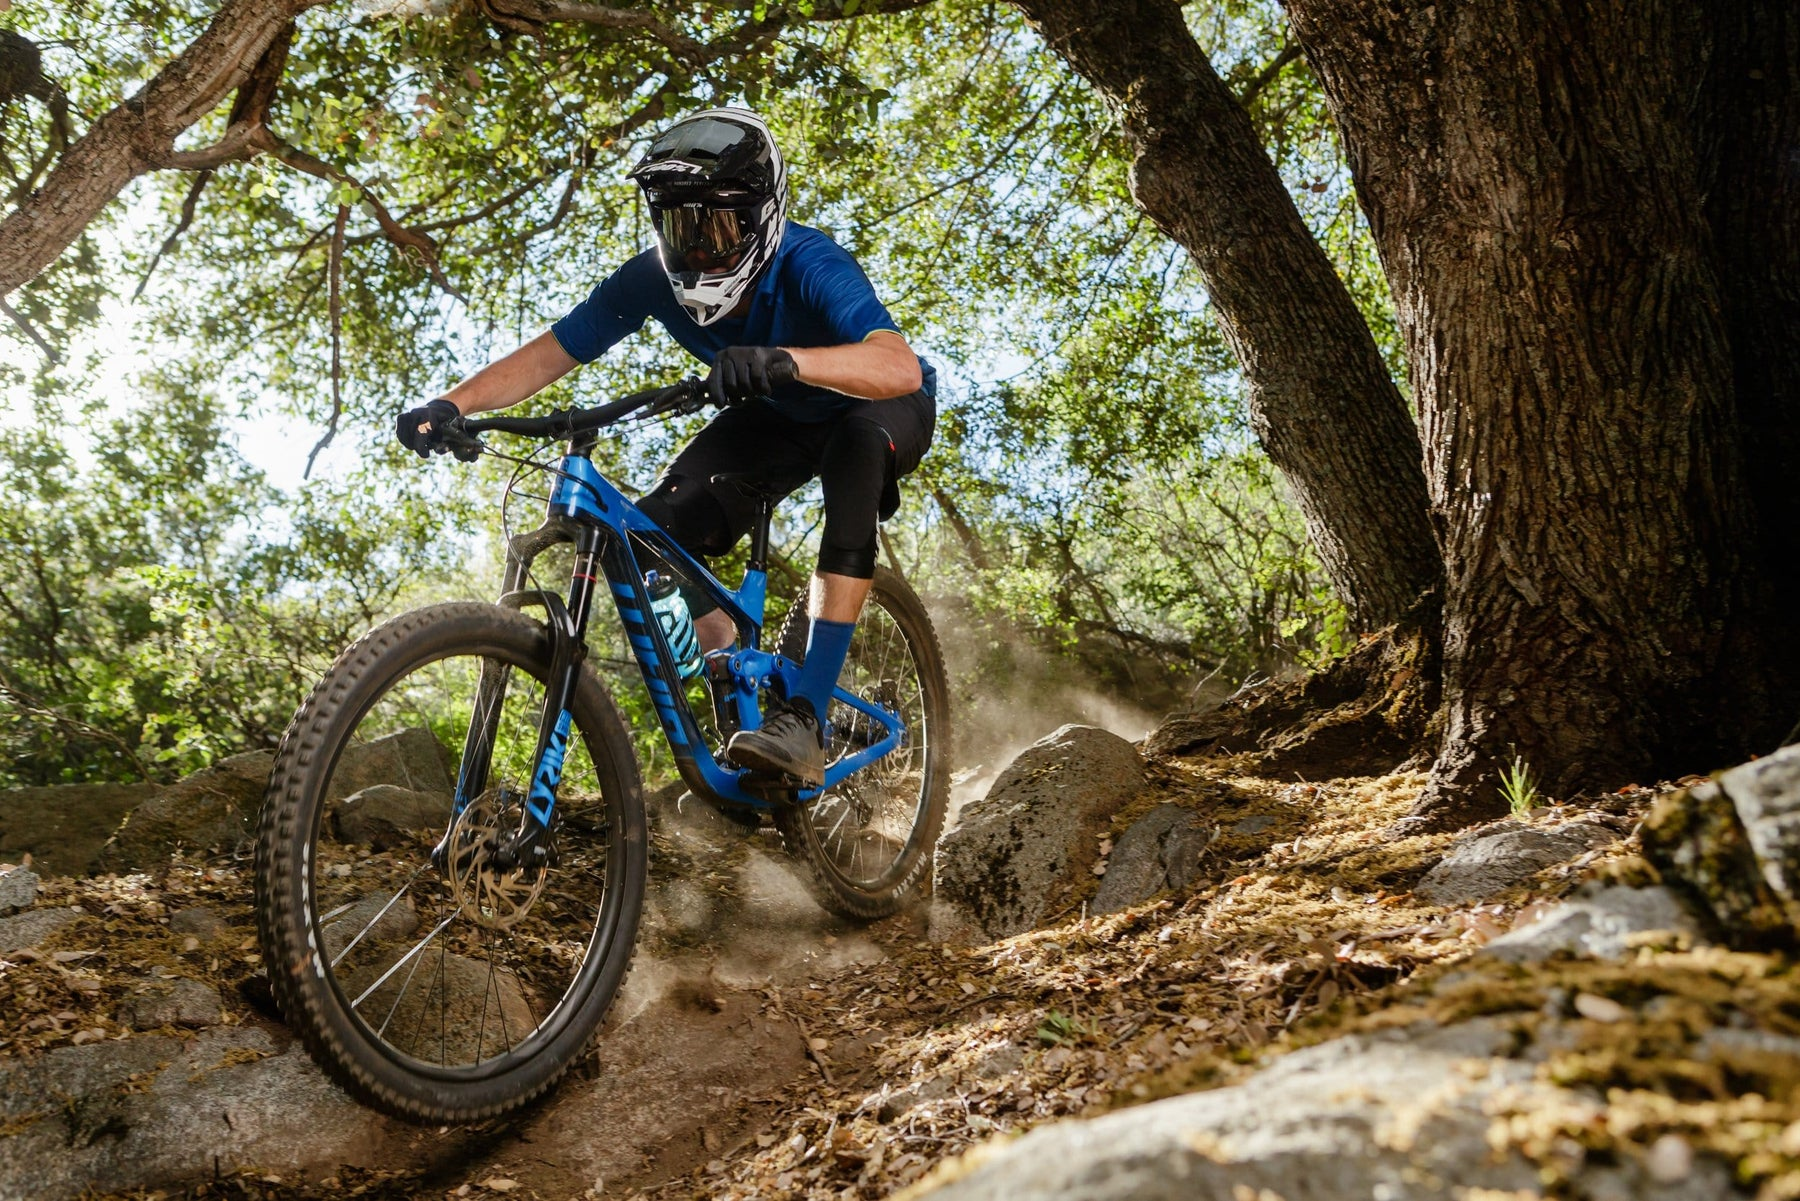 Mountain Bike Suspension Tips - Forks, Shocks, and Dropper Posts